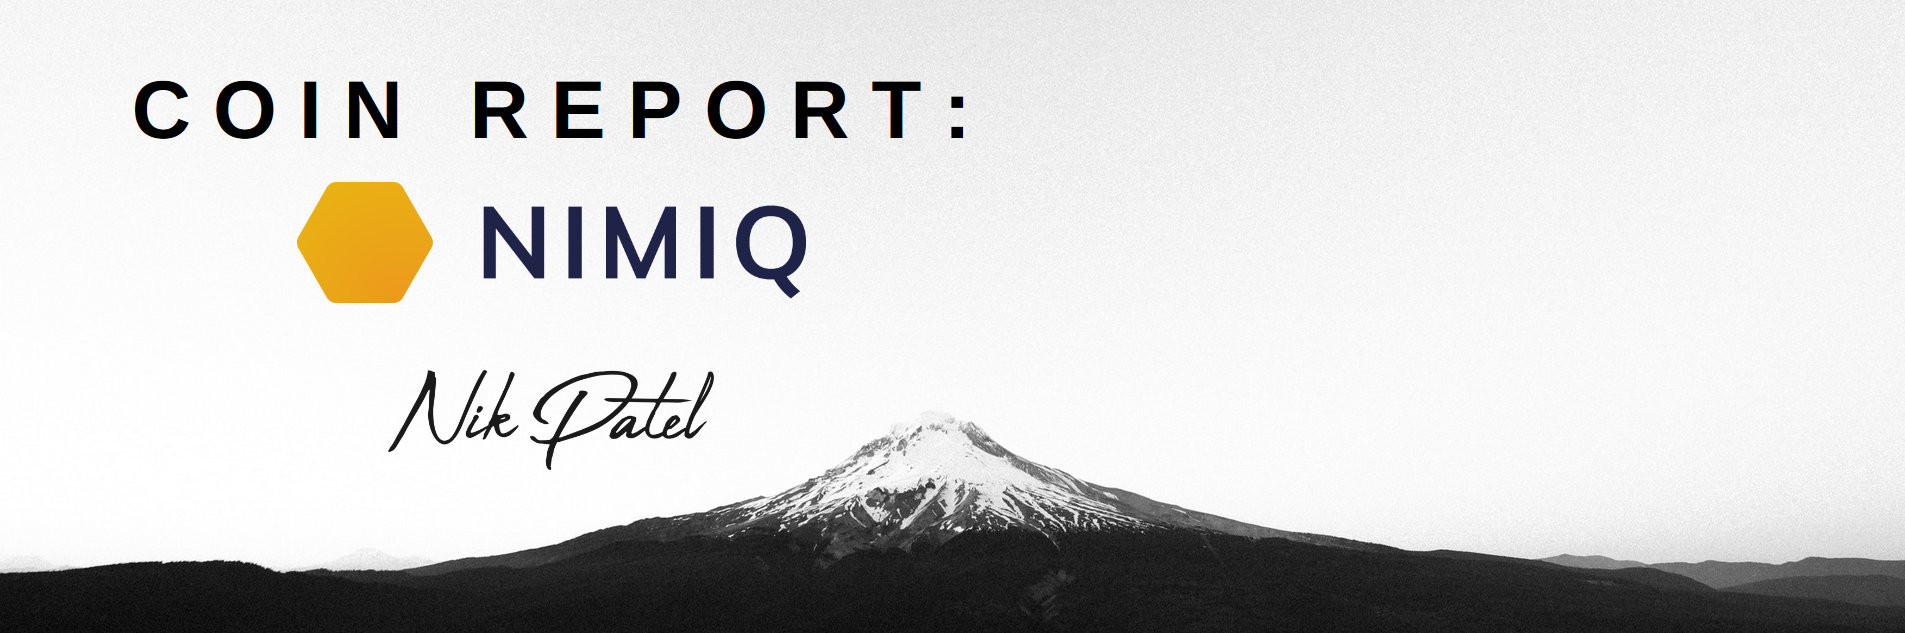 Coin Report #26: Nimiq